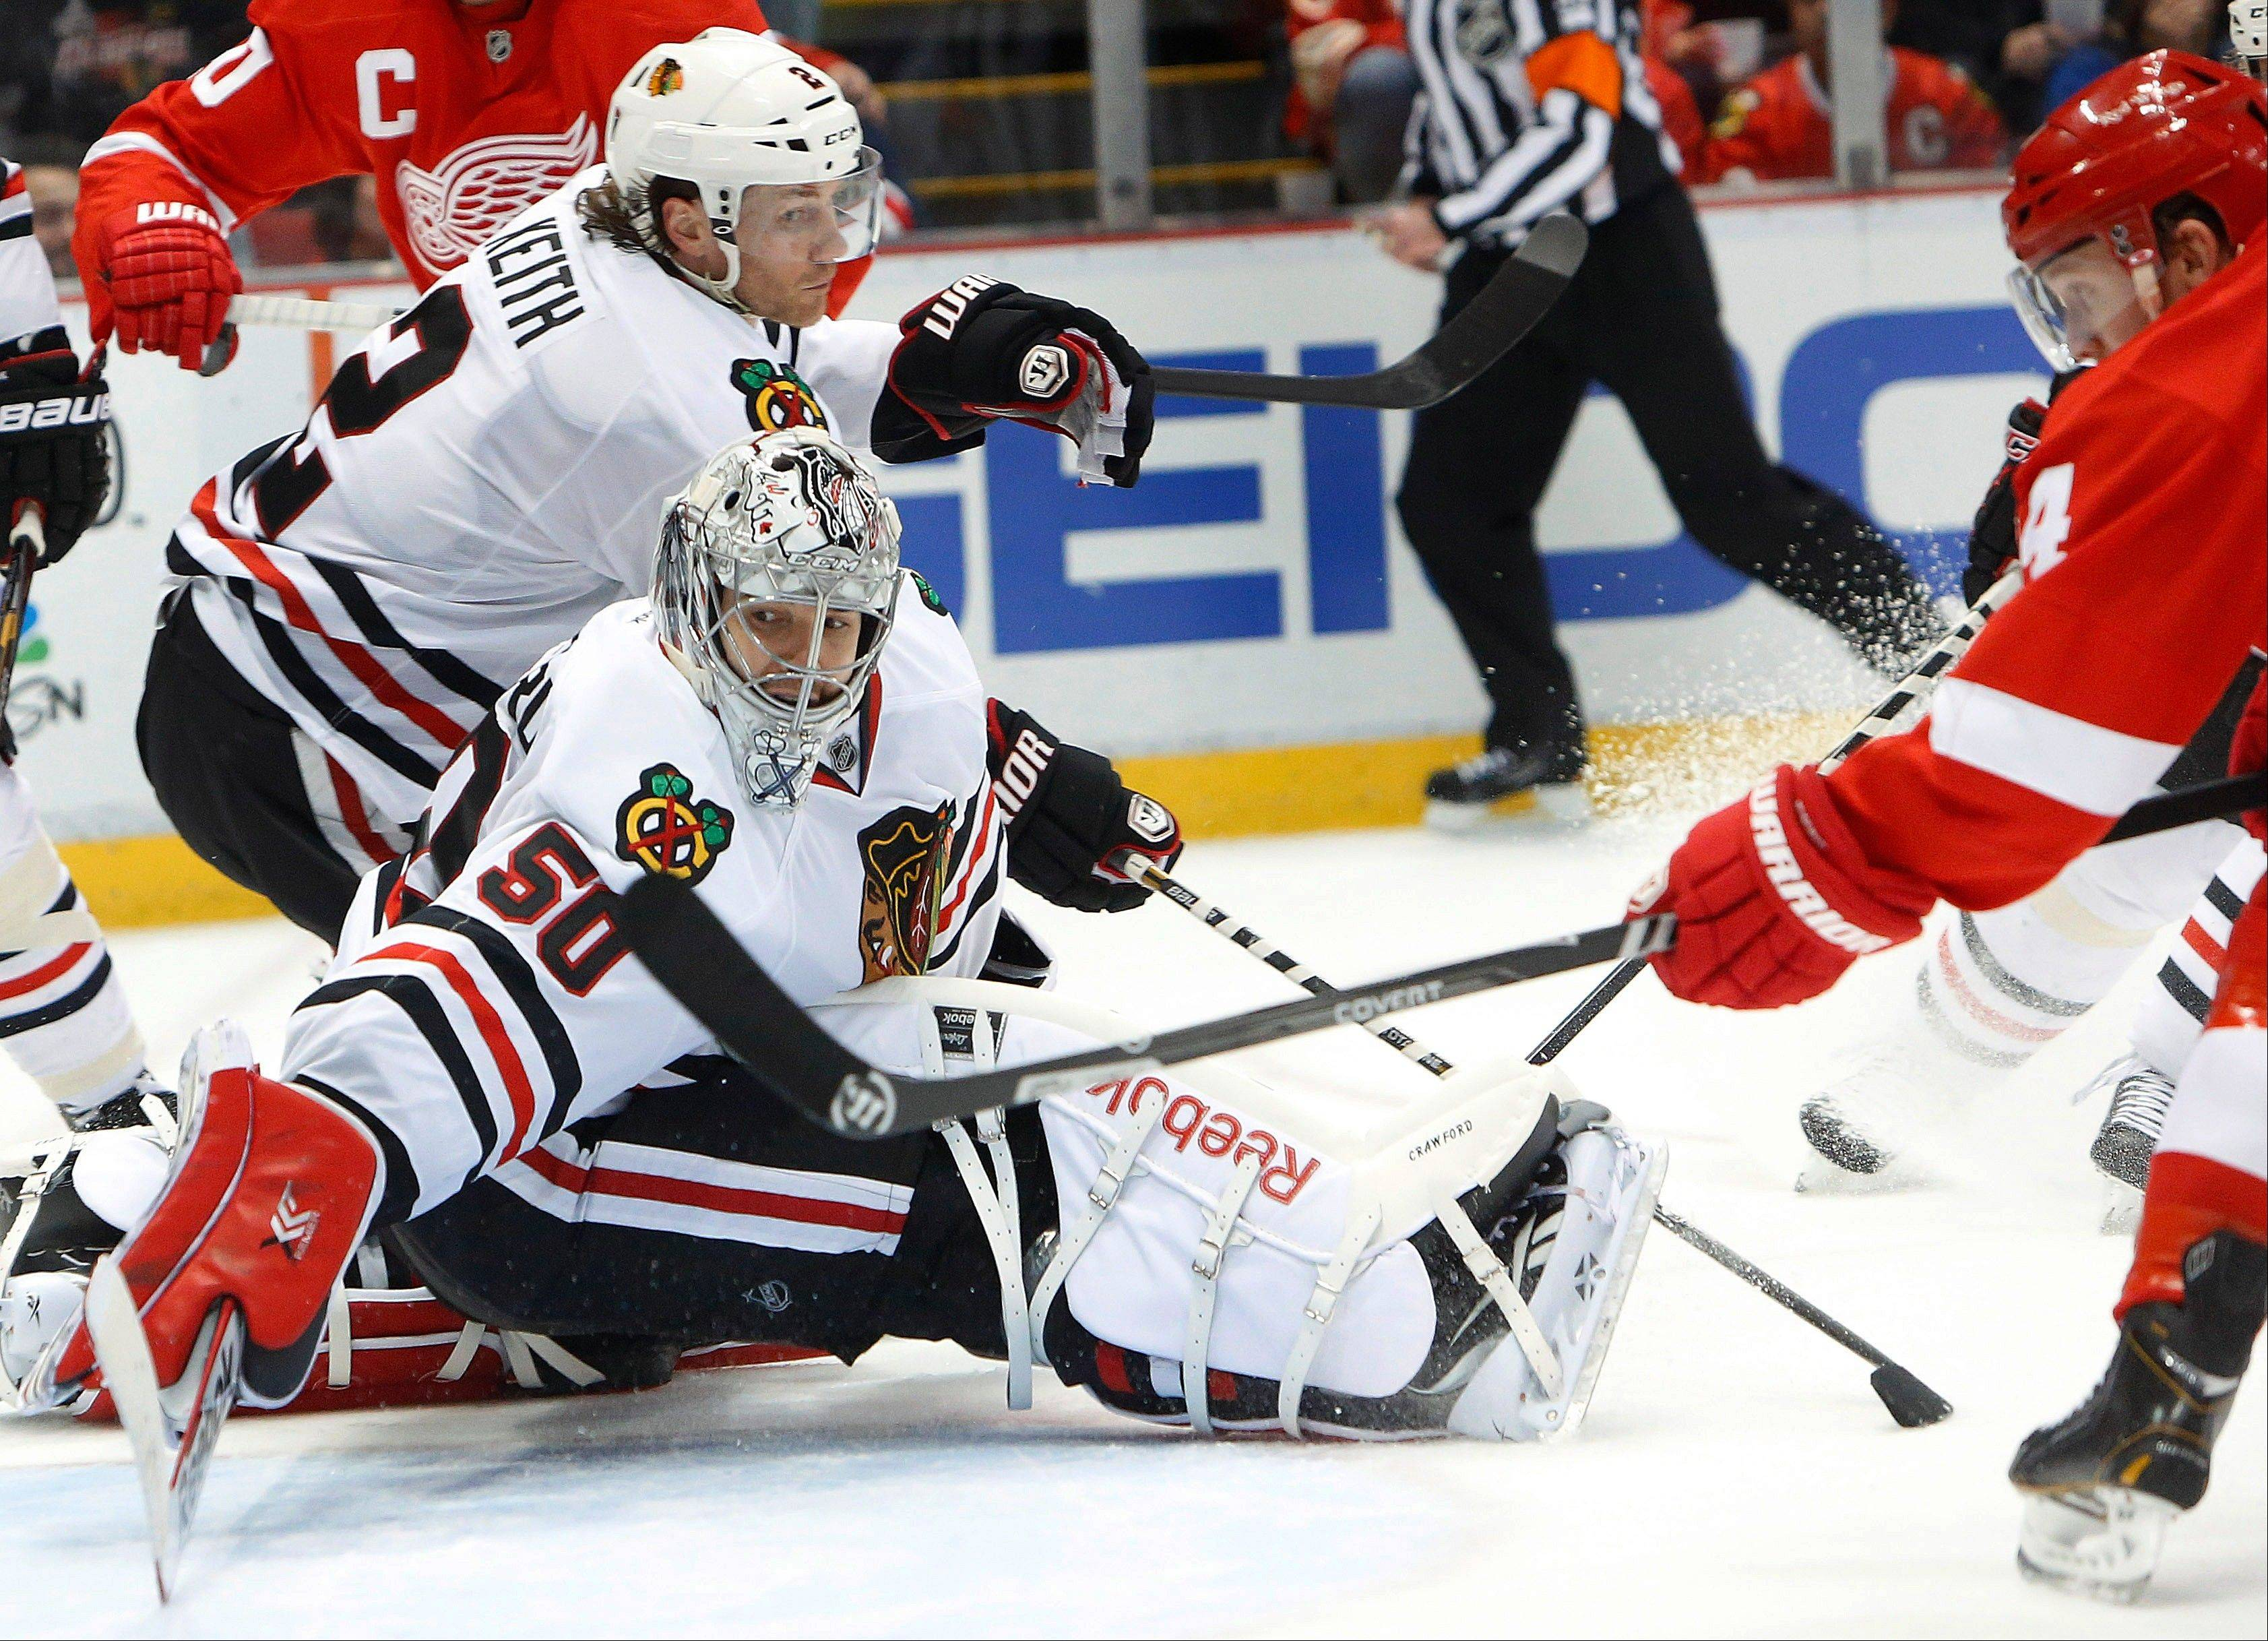 Blackhawks go to shootout, fall to Red Wings